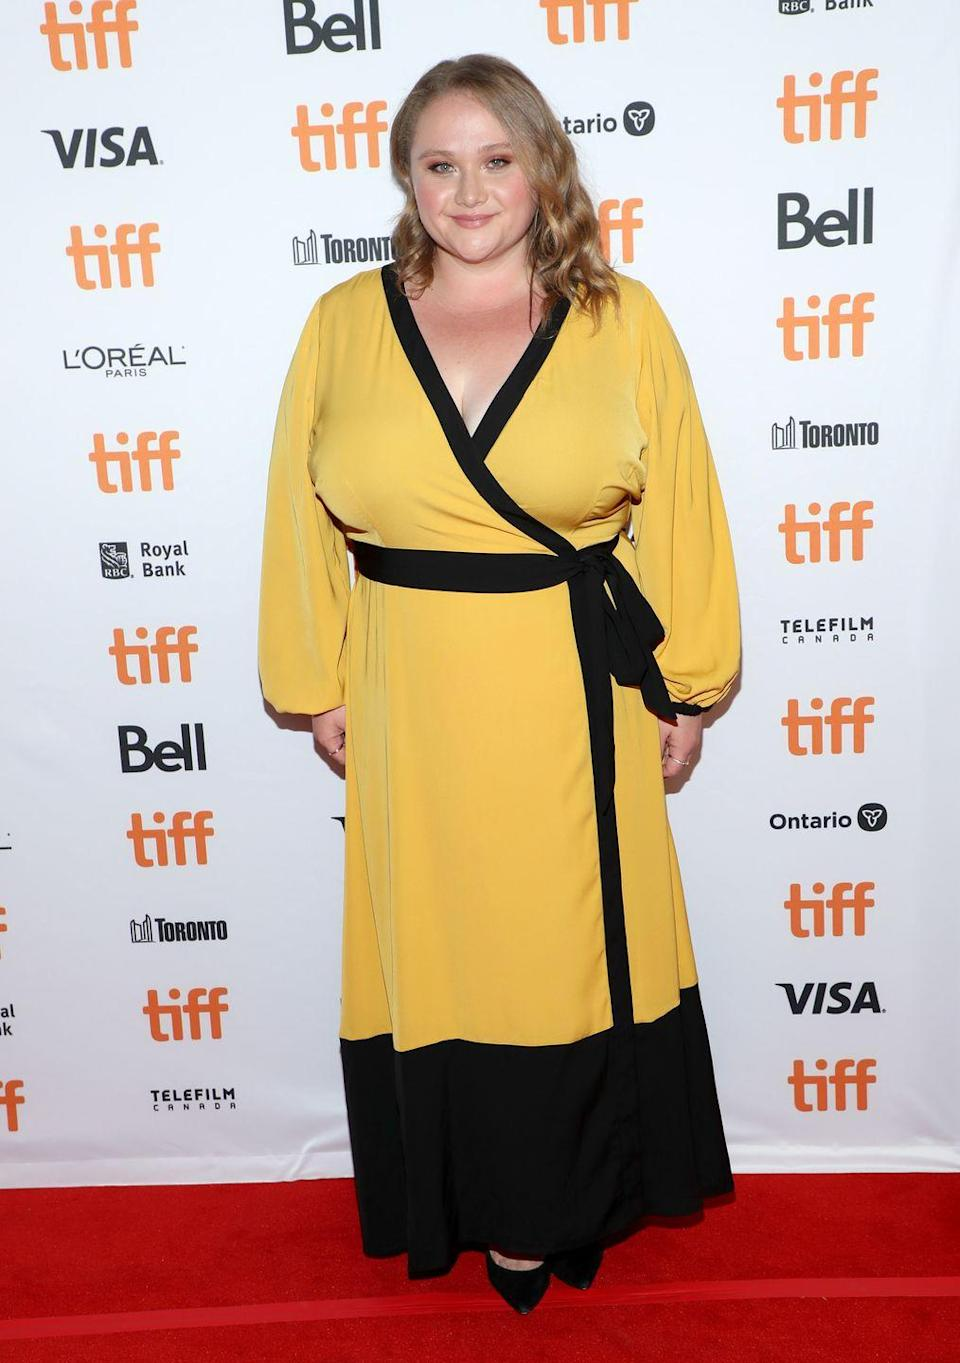 <p>Wrap dresses really are one of the most versatile pieces of apparel to exist. Danielle Macdonald shows us that we shouldn't shy away from bold colours and so I've added a colorful wrap dress to my New Year's outfit list.</p>